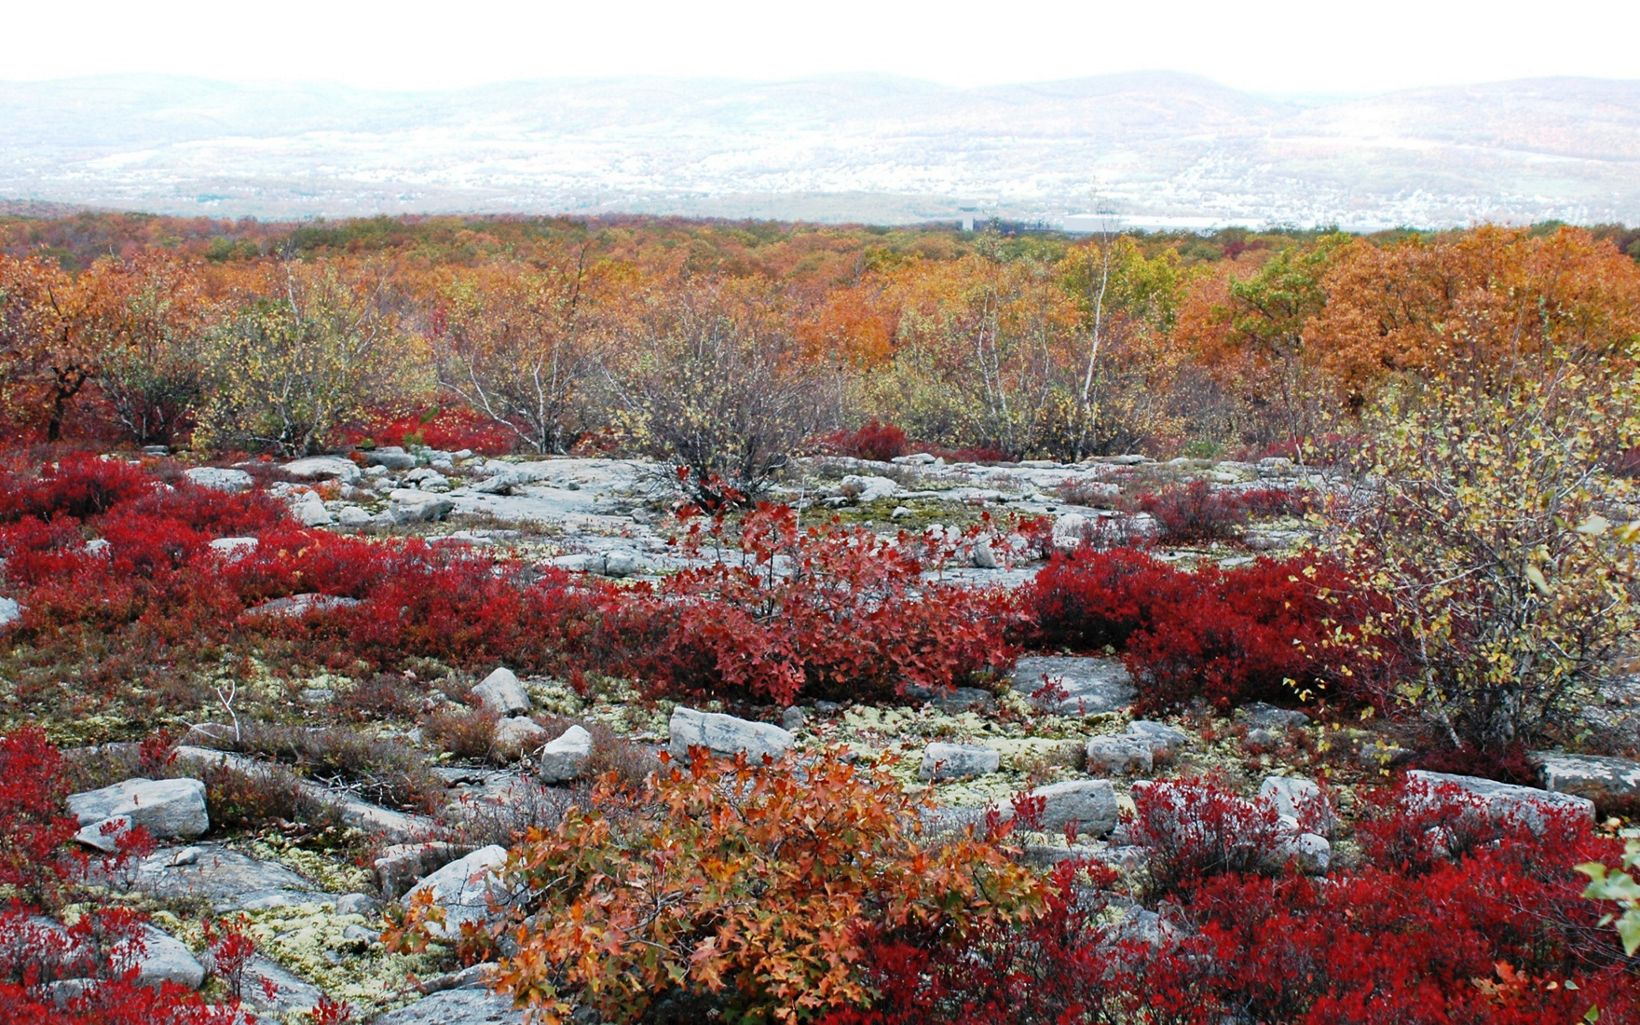 Autumn in the barrens at the Dick and Nancy Eales Preserve at Moosic Mountain